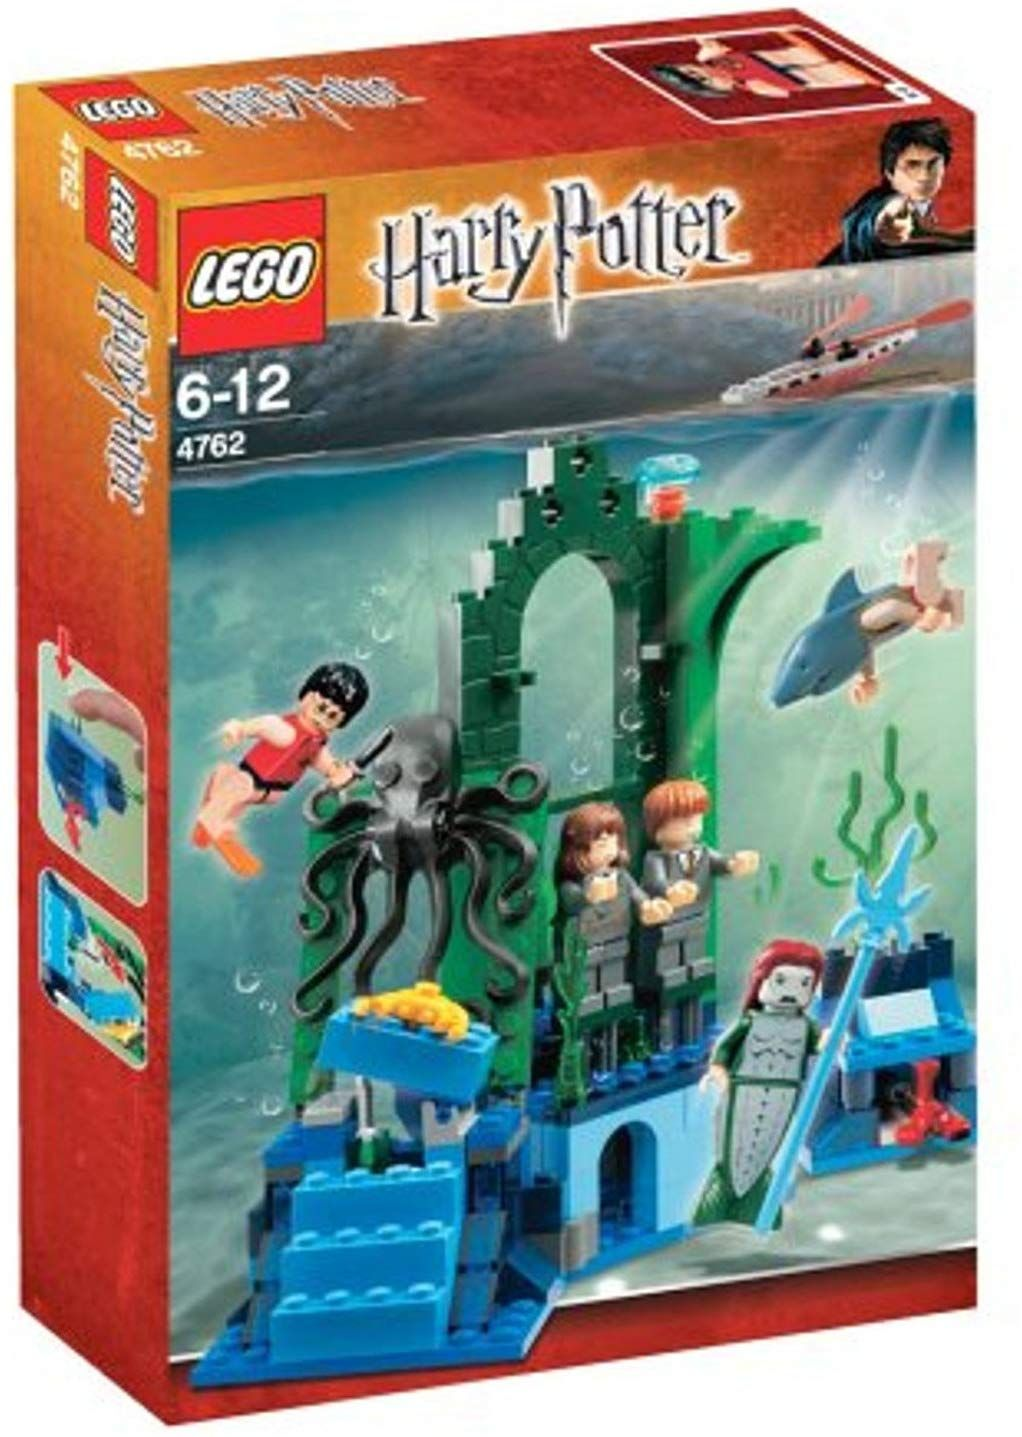 Lego Rescue 4762 Harry Potter Underwater People From Marple Lego Harry Potter Lego Hogwarts Harry Potter Toys